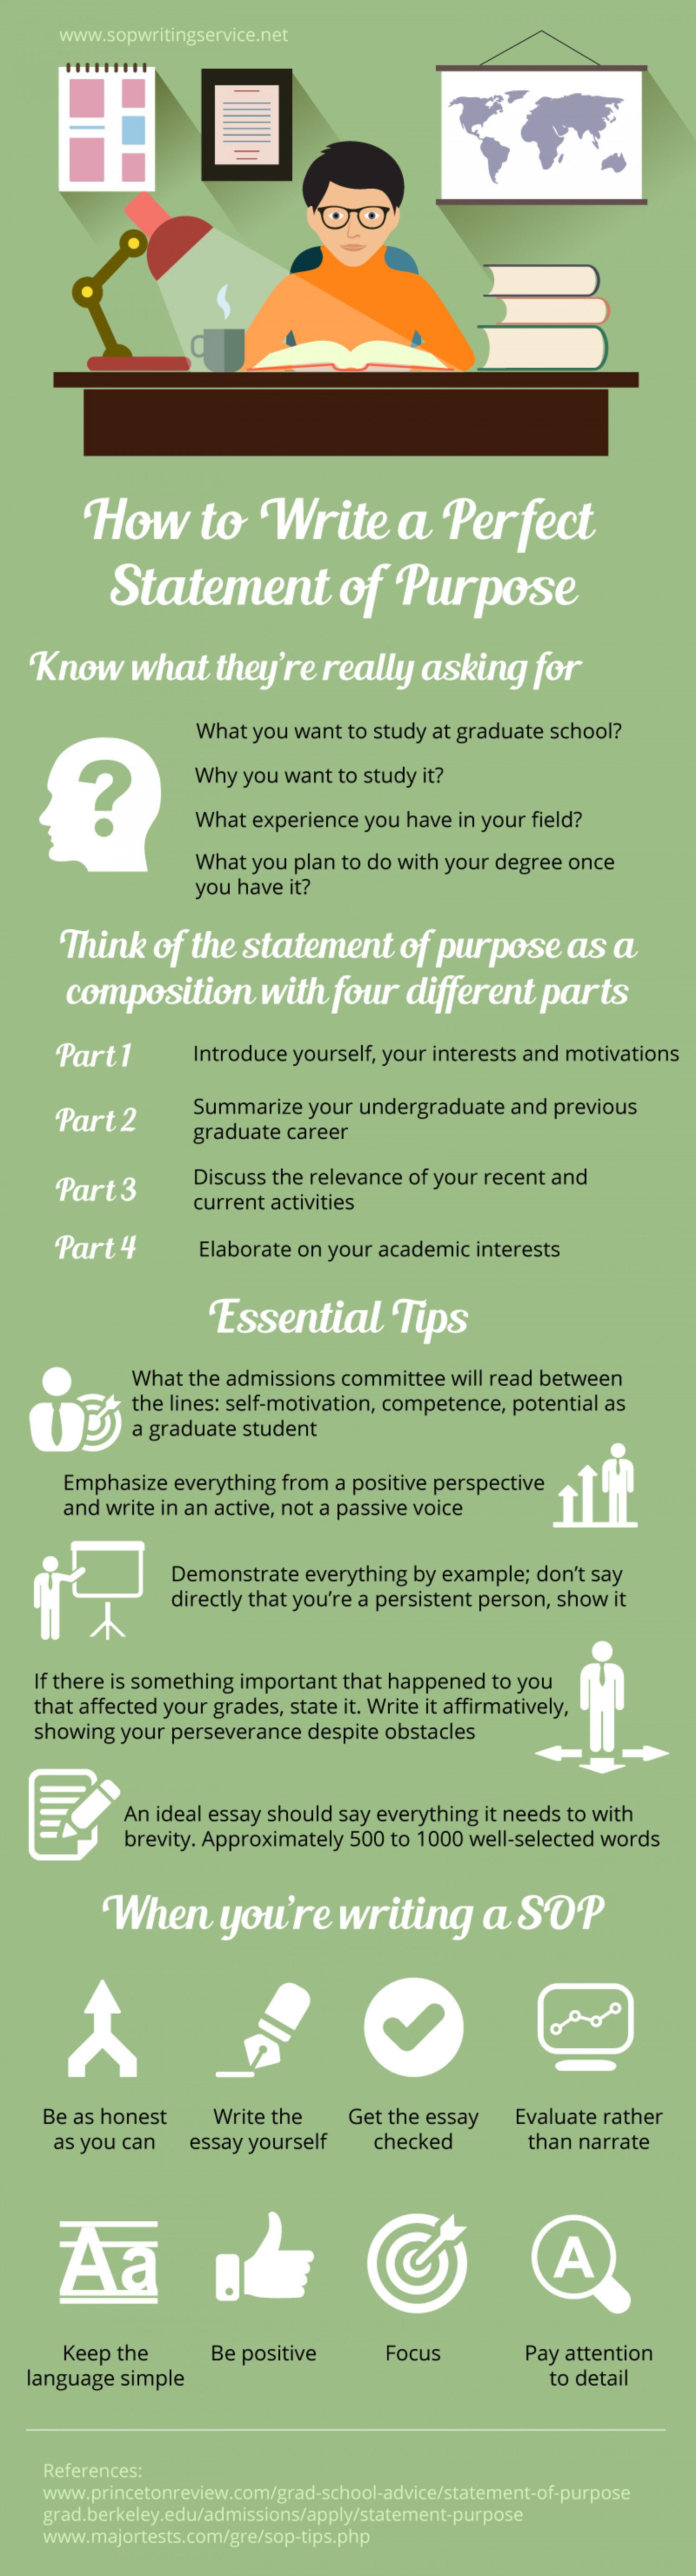 how to write a perfect statement of purpose ly how to write a perfect statement of purpose infographic